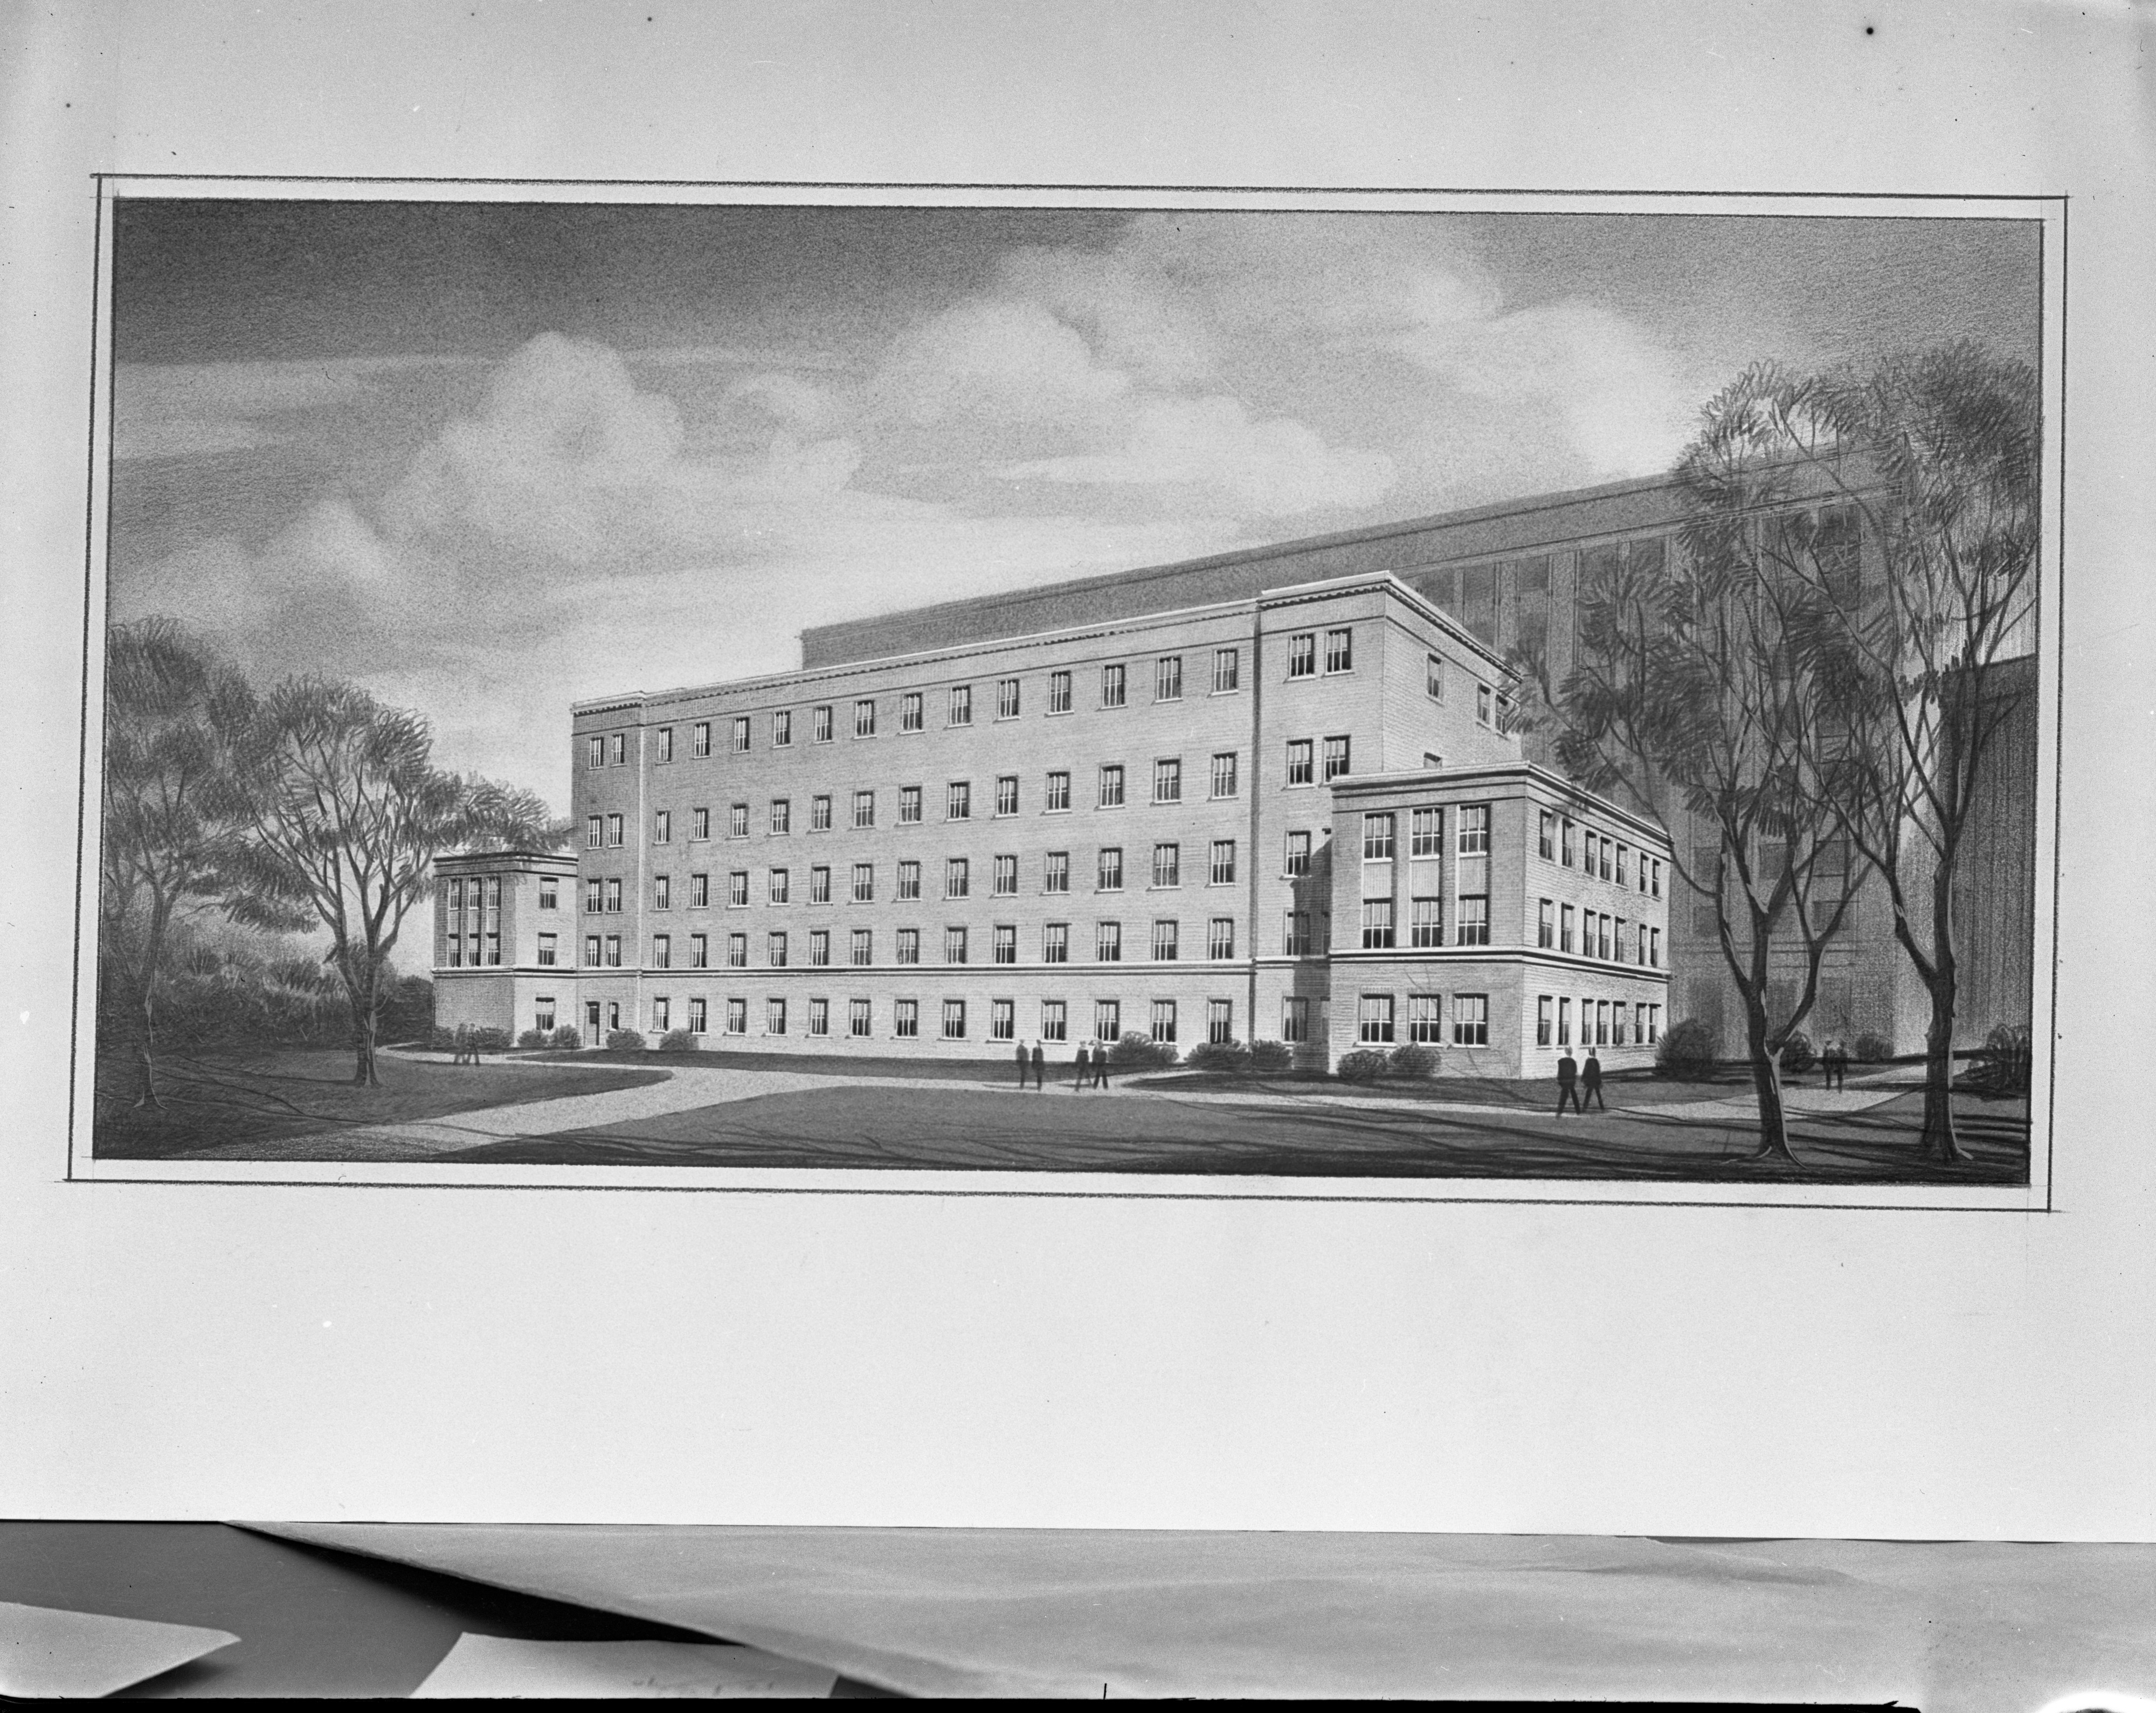 University of Michigan's proposed Neuropsychiatric Clinic, 1938 image